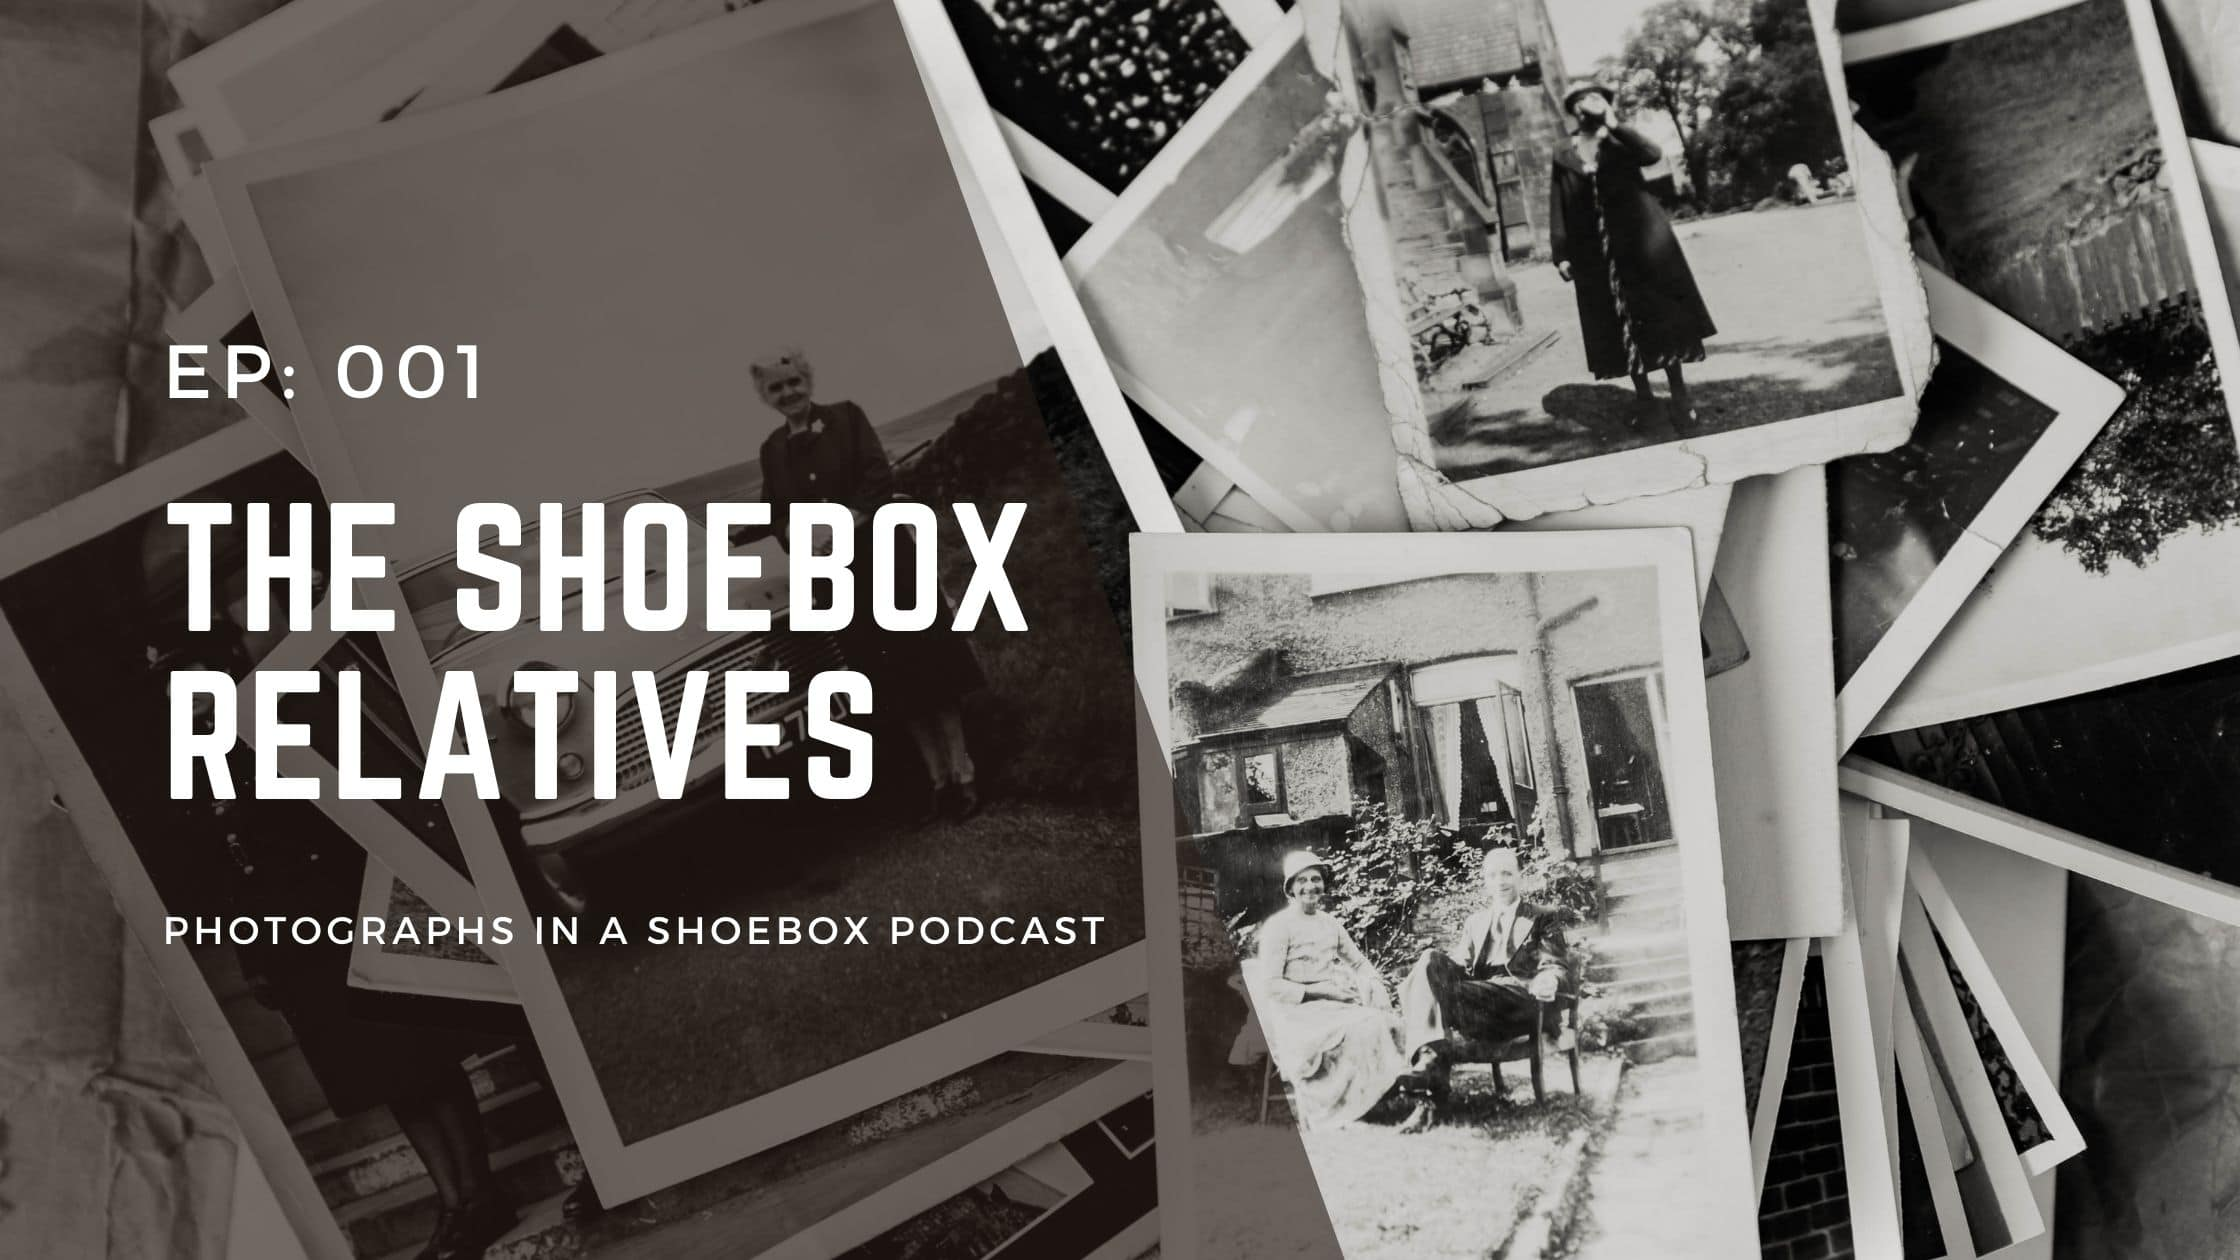 artwork for photographs in a shoebox podcast episode 001